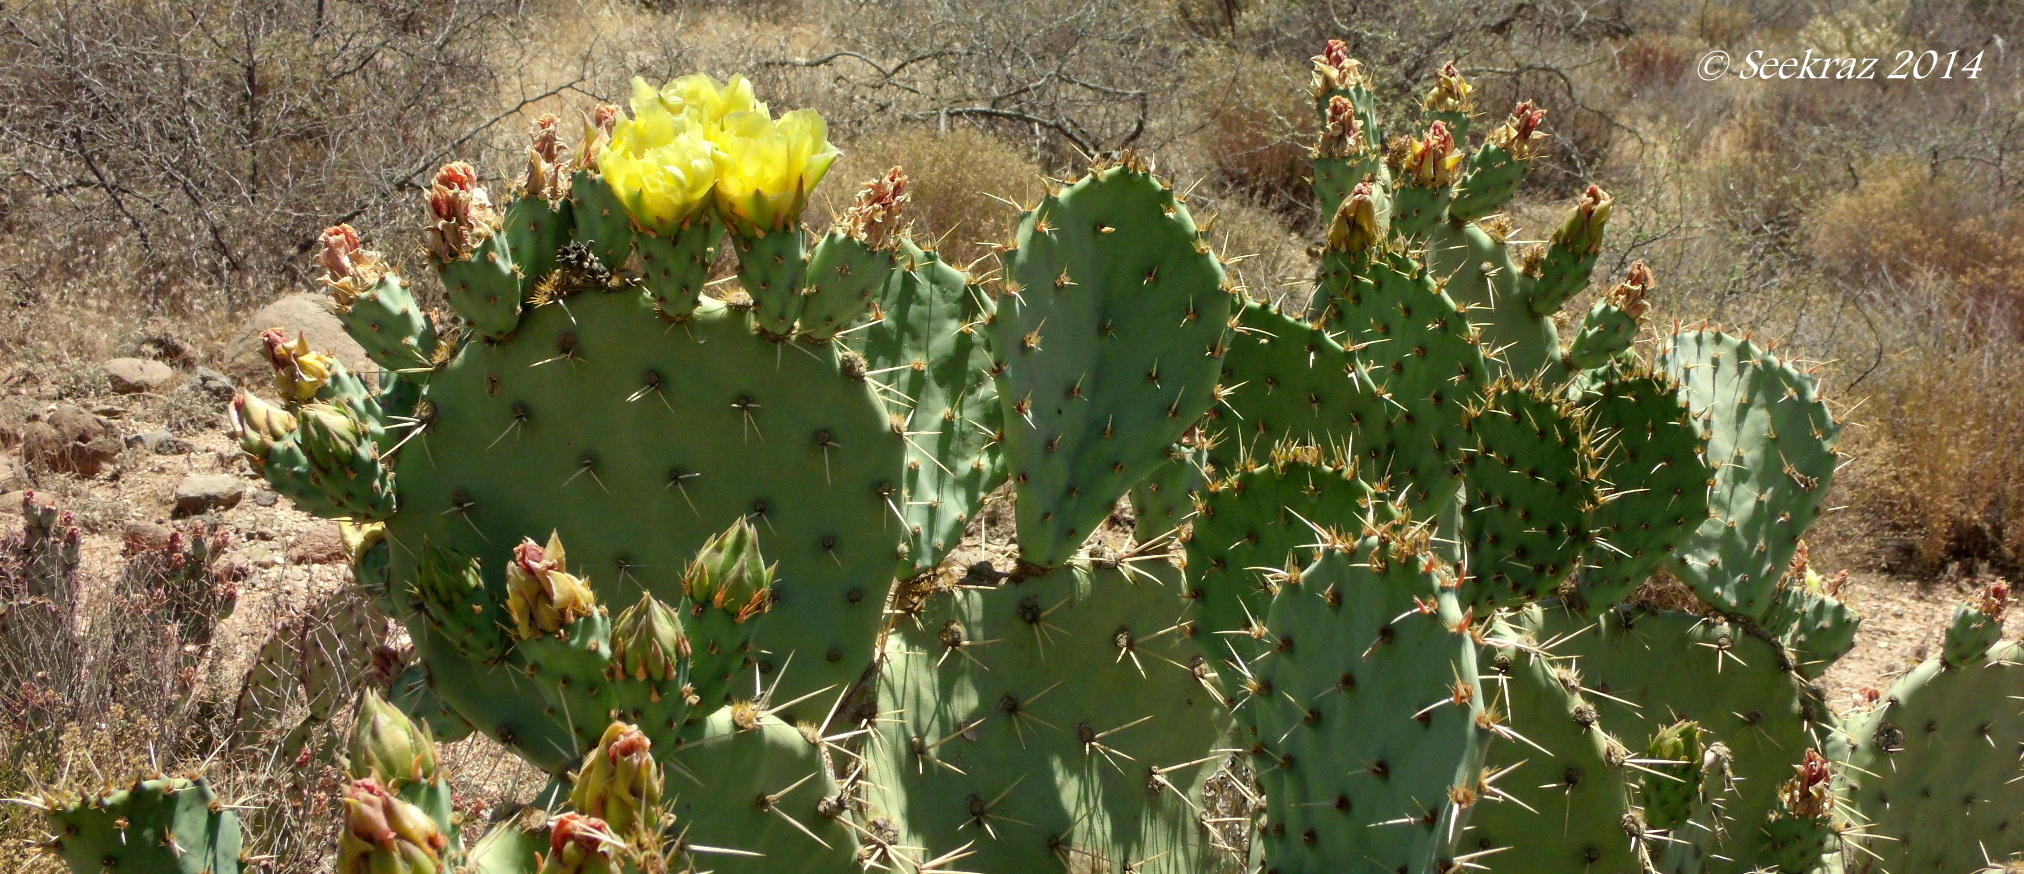 Prickly-Pear cactus | Scott's Place...Images and Words